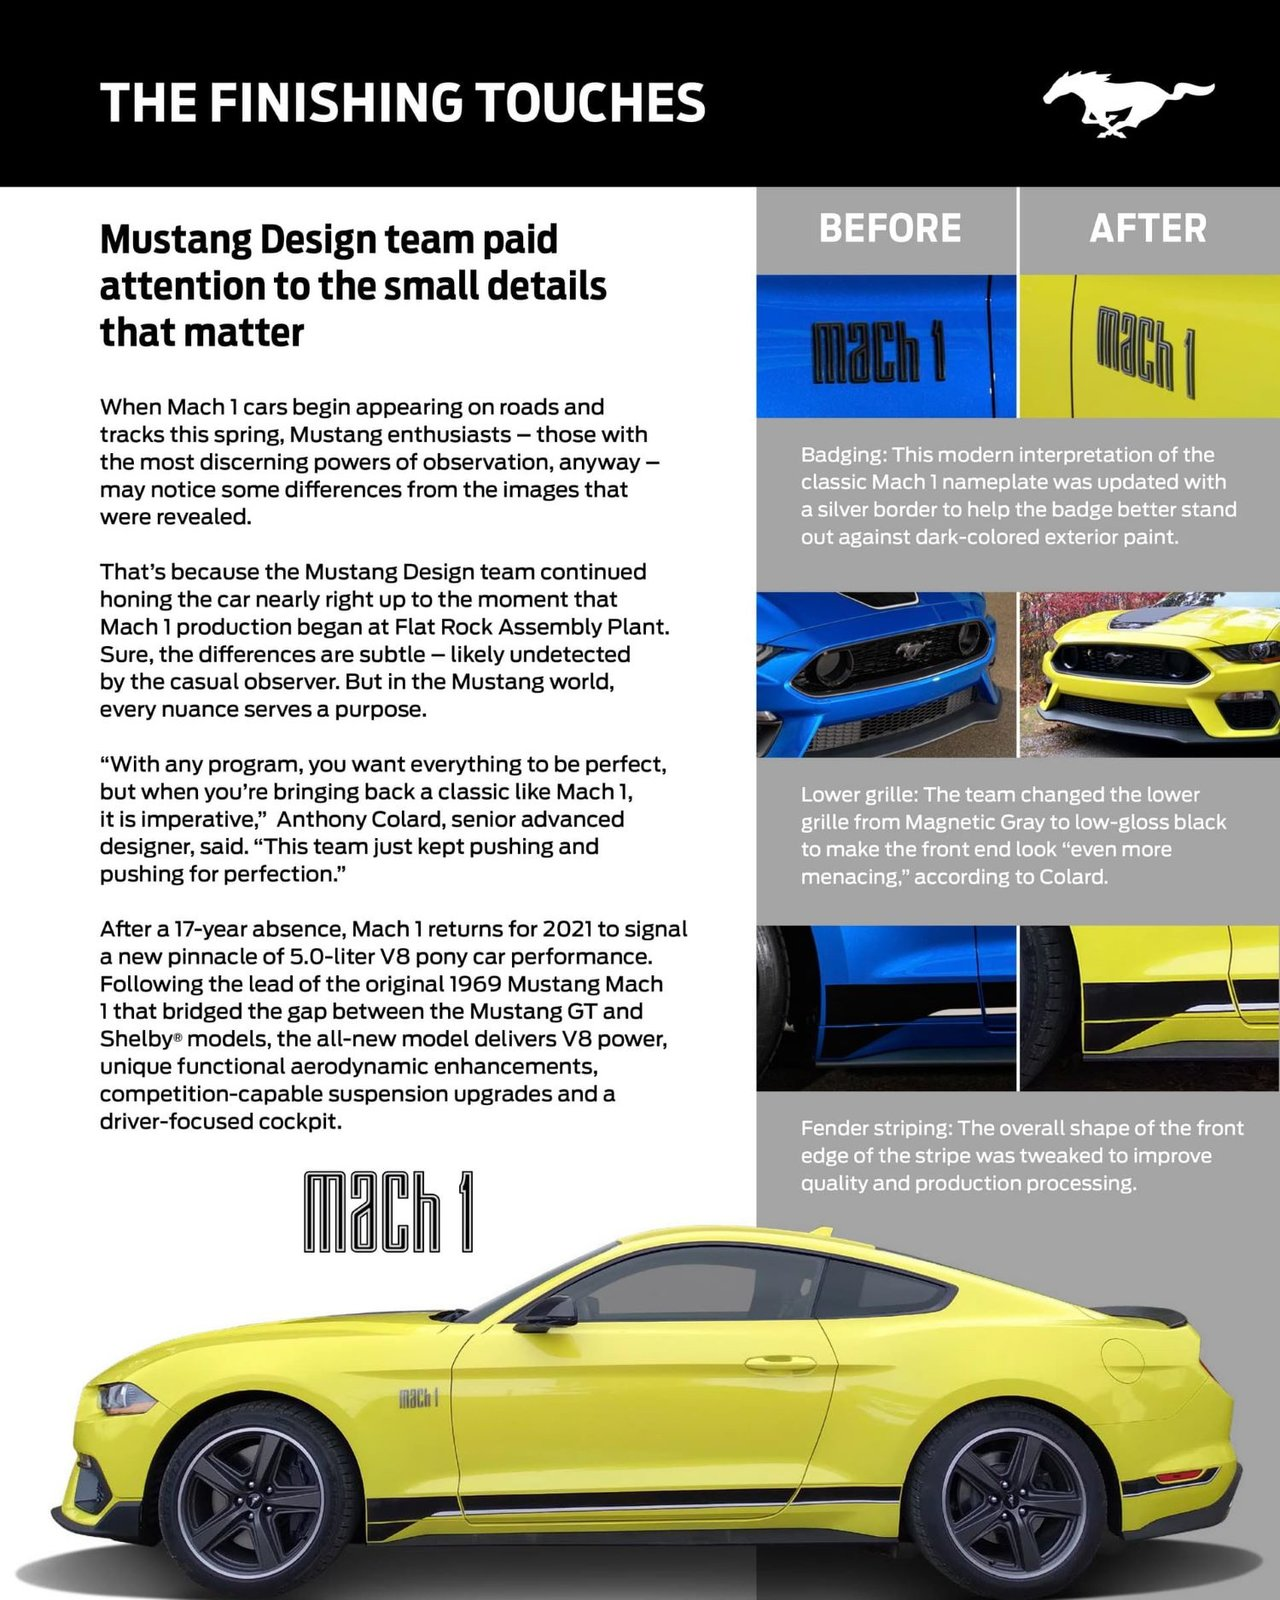 2021-Ford-Mustang-Mach-1-New-Design-Infographic.jpg